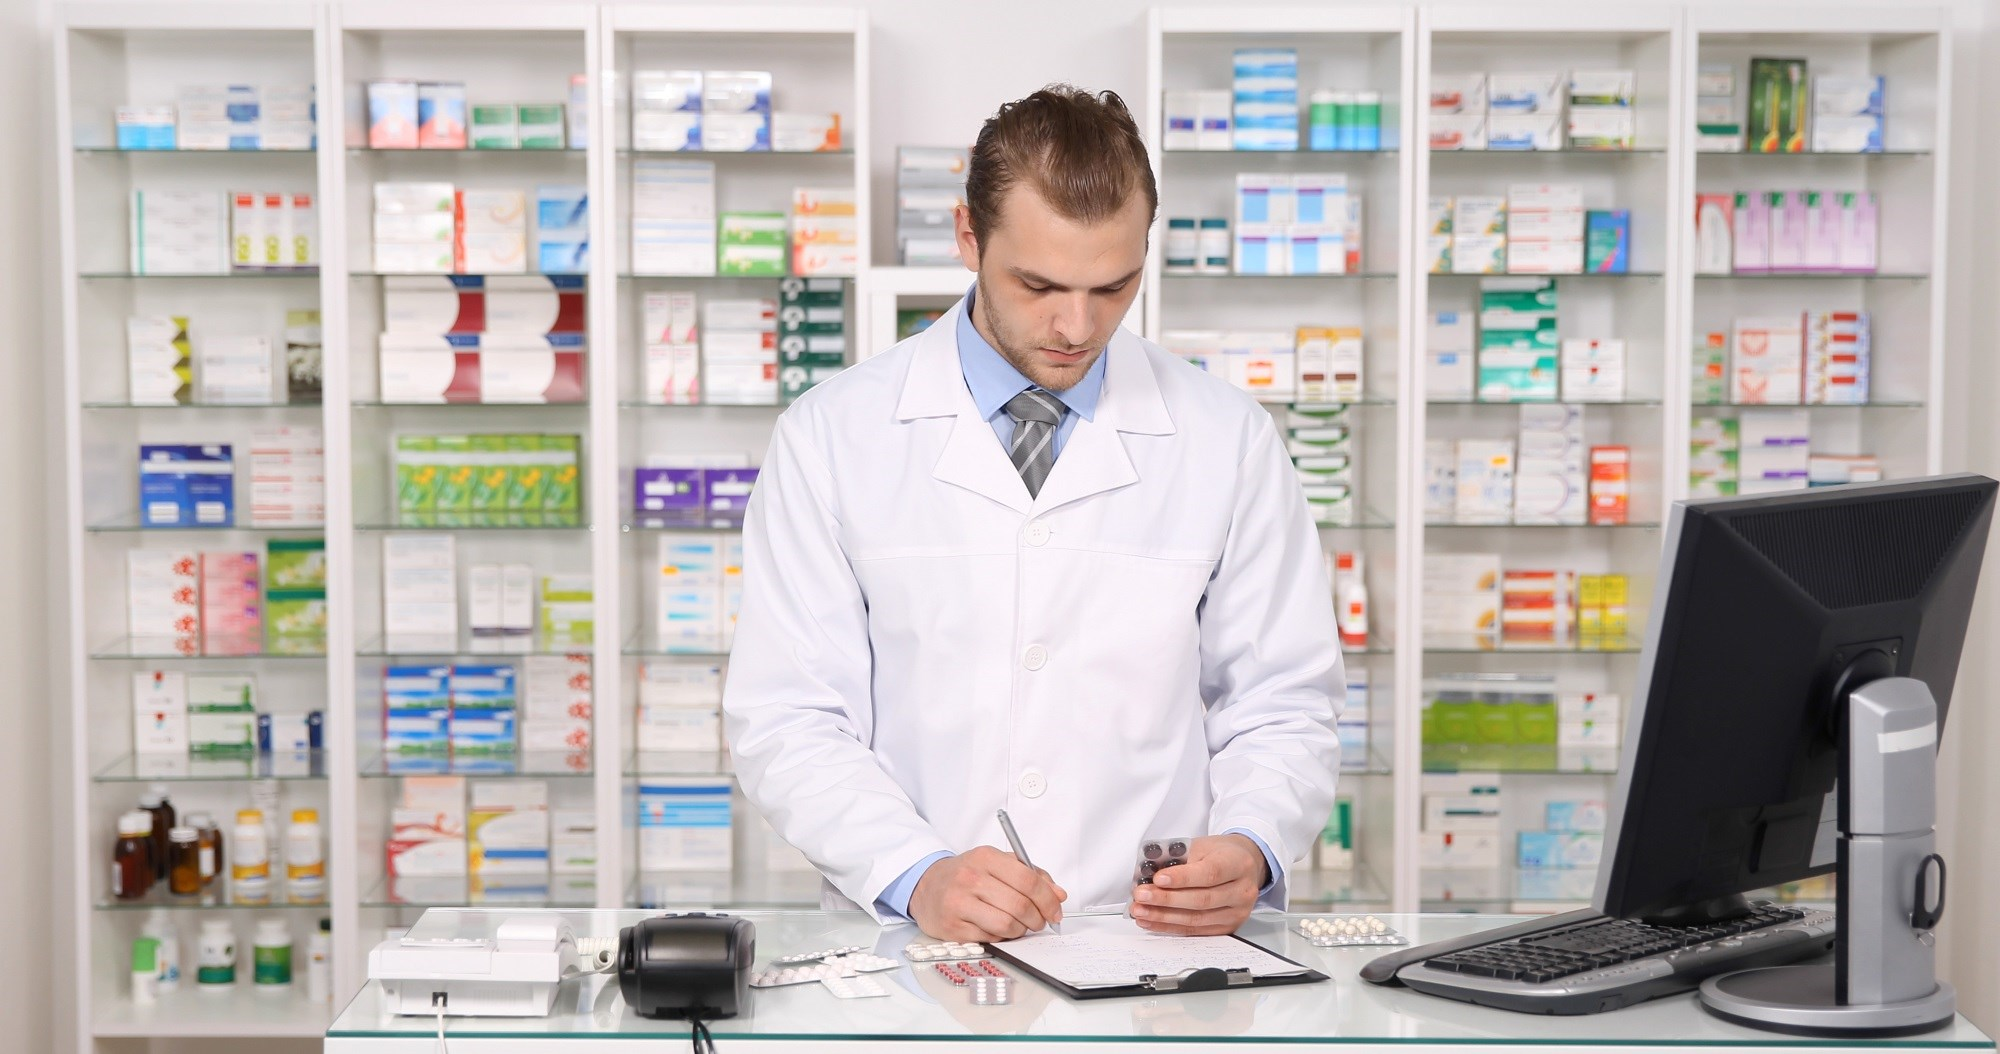 Intervention by Pharmacists May Effectively Reduce Use of Inappropriate Medications in the Elderly